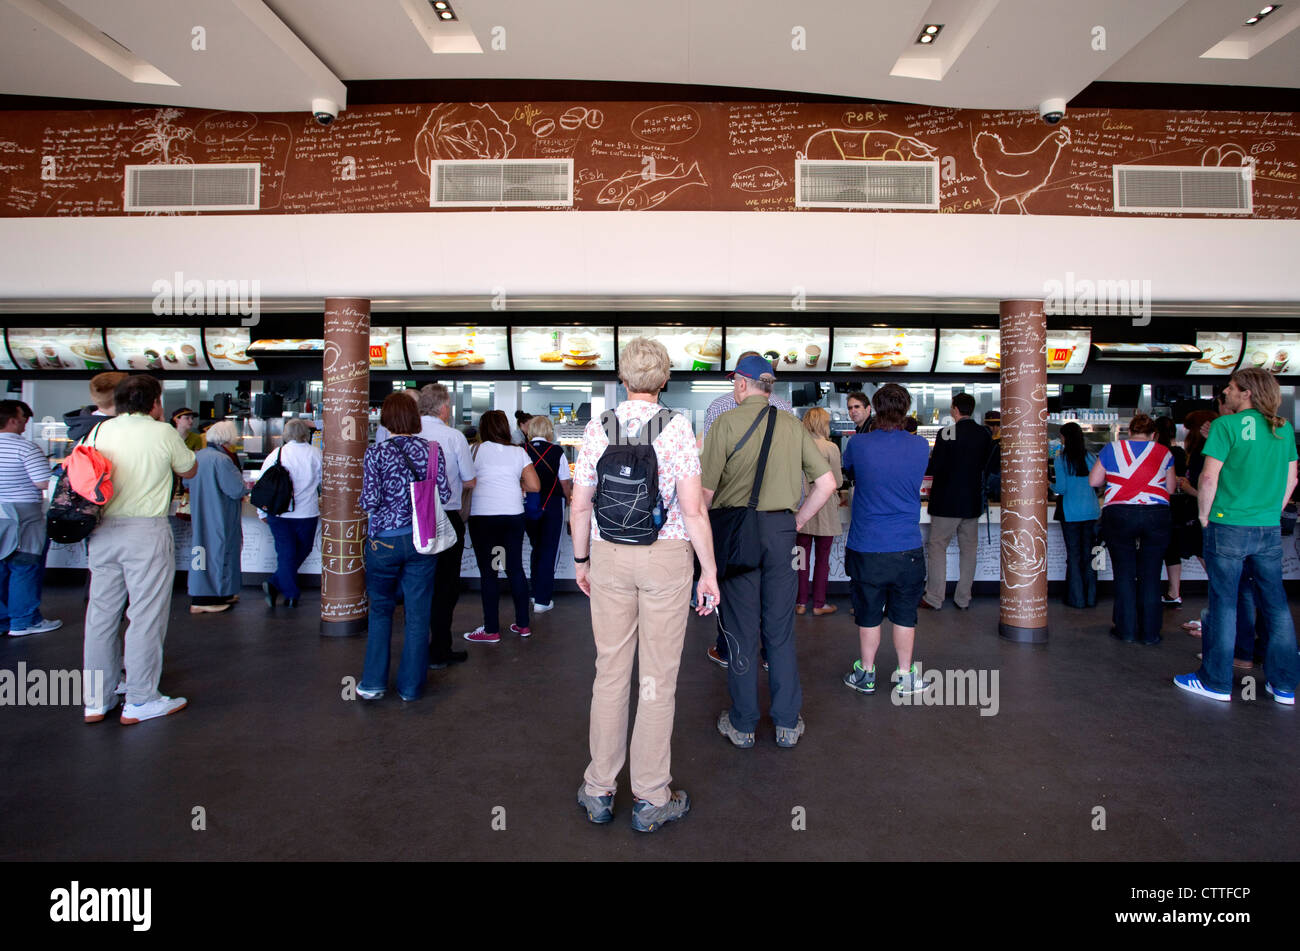 Customers buying food in McDonald's in Olympic Park, London - Stock Image